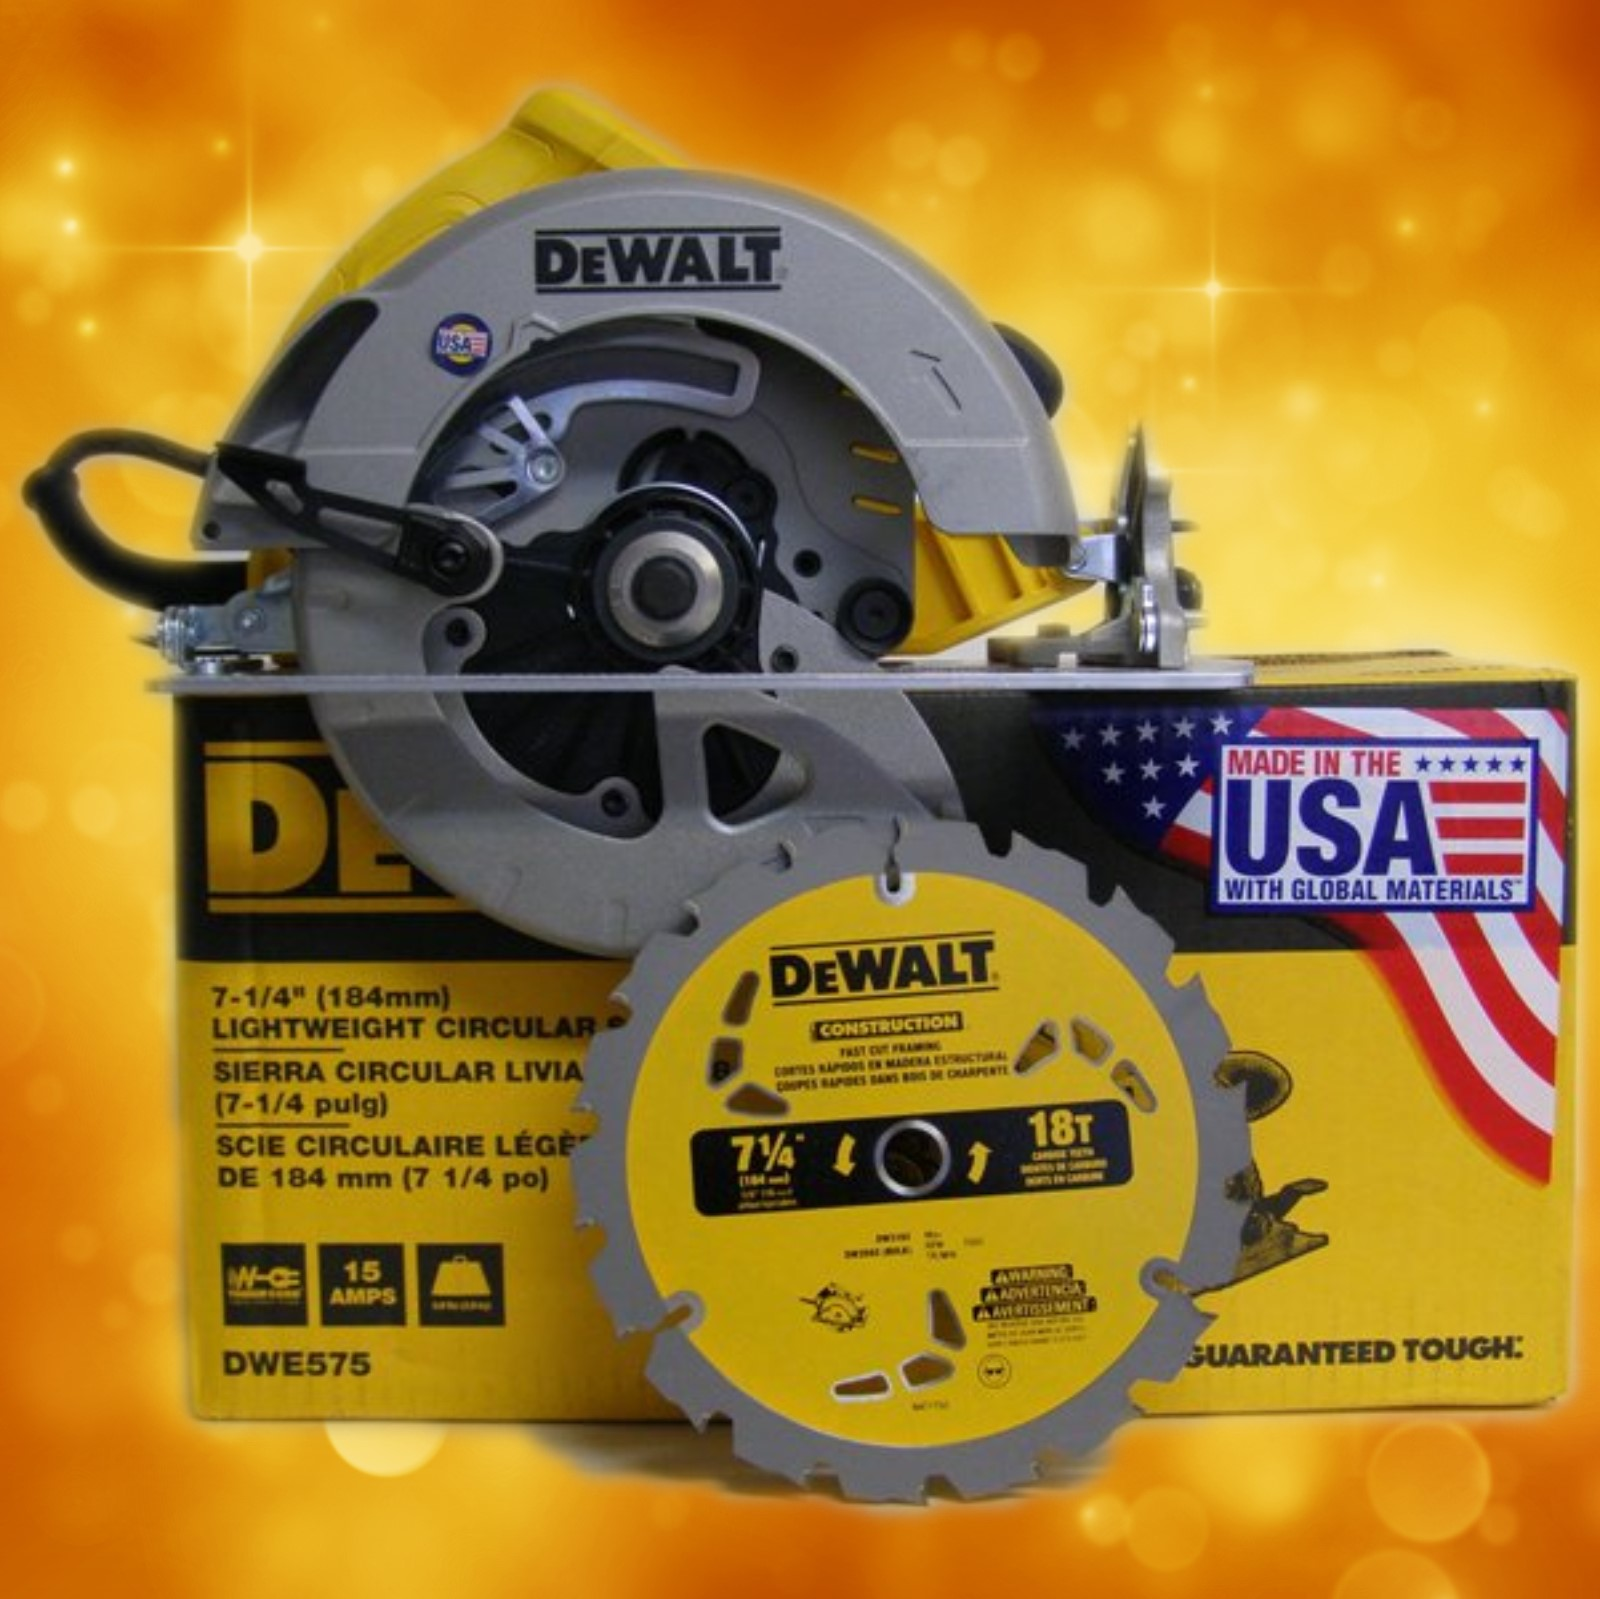 "DeWalt 7-1/4"" DWE575 Light Weight Circular Saw DWE575"